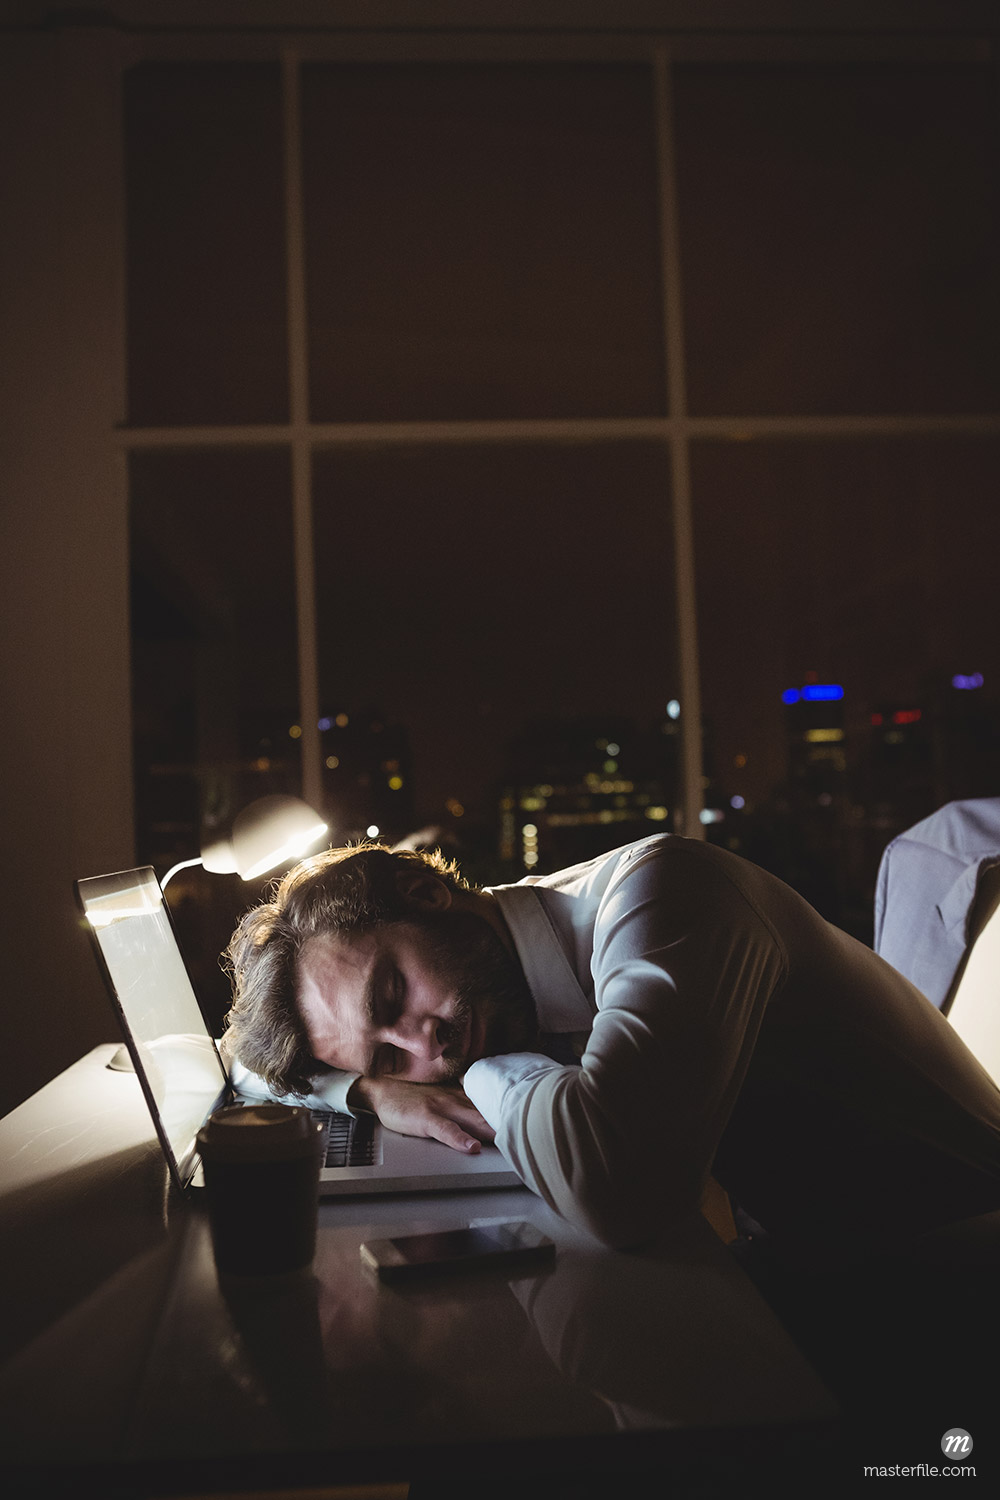 Businessman sleeping on his laptop at night © Masterfile